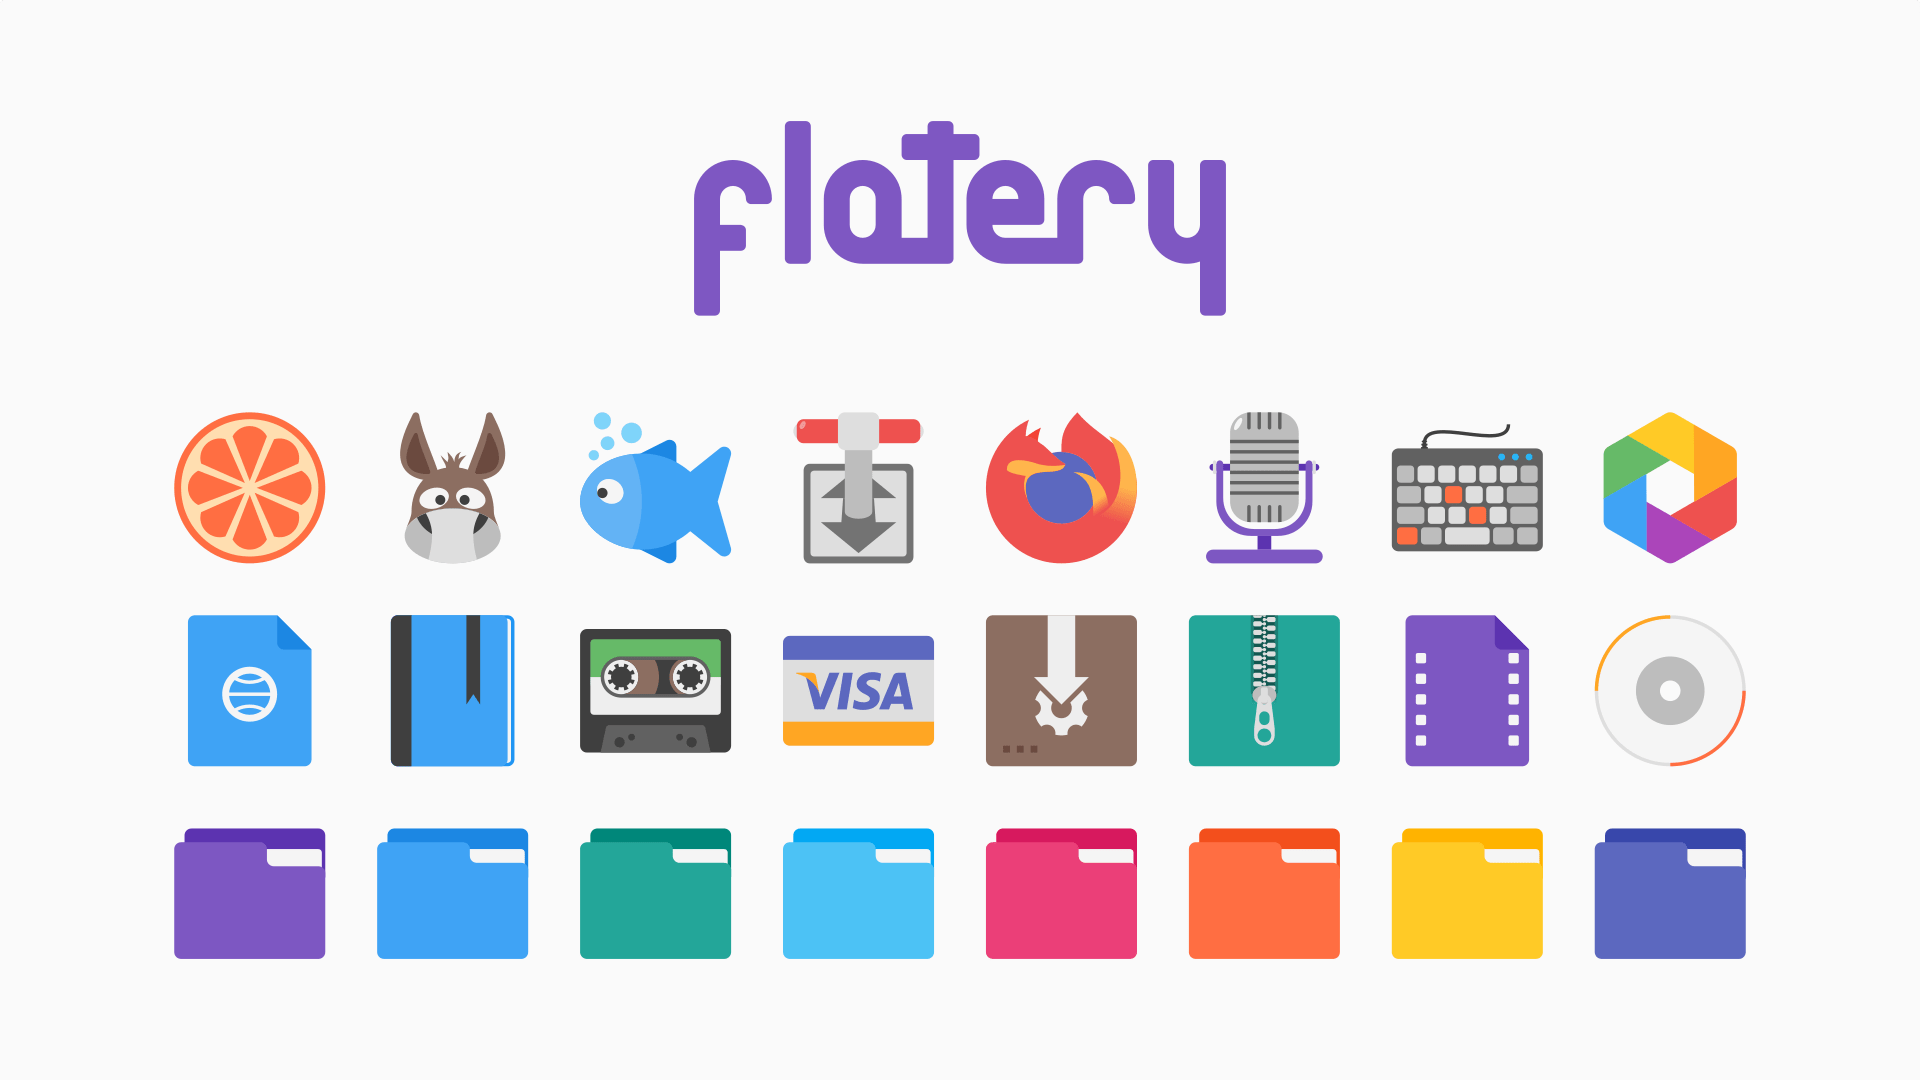 flatery-icon-theme.png